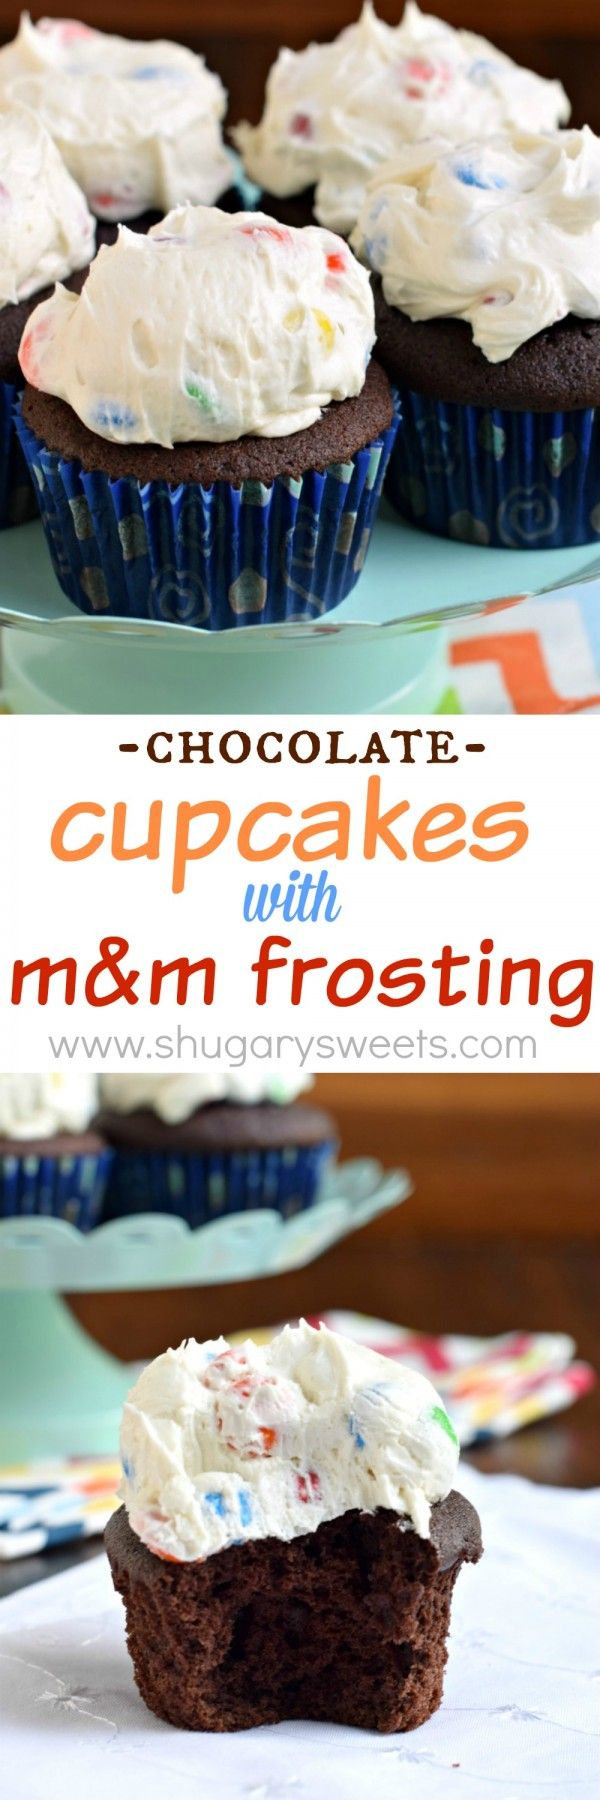 Chocolate Cupcakes with M&M Frosting